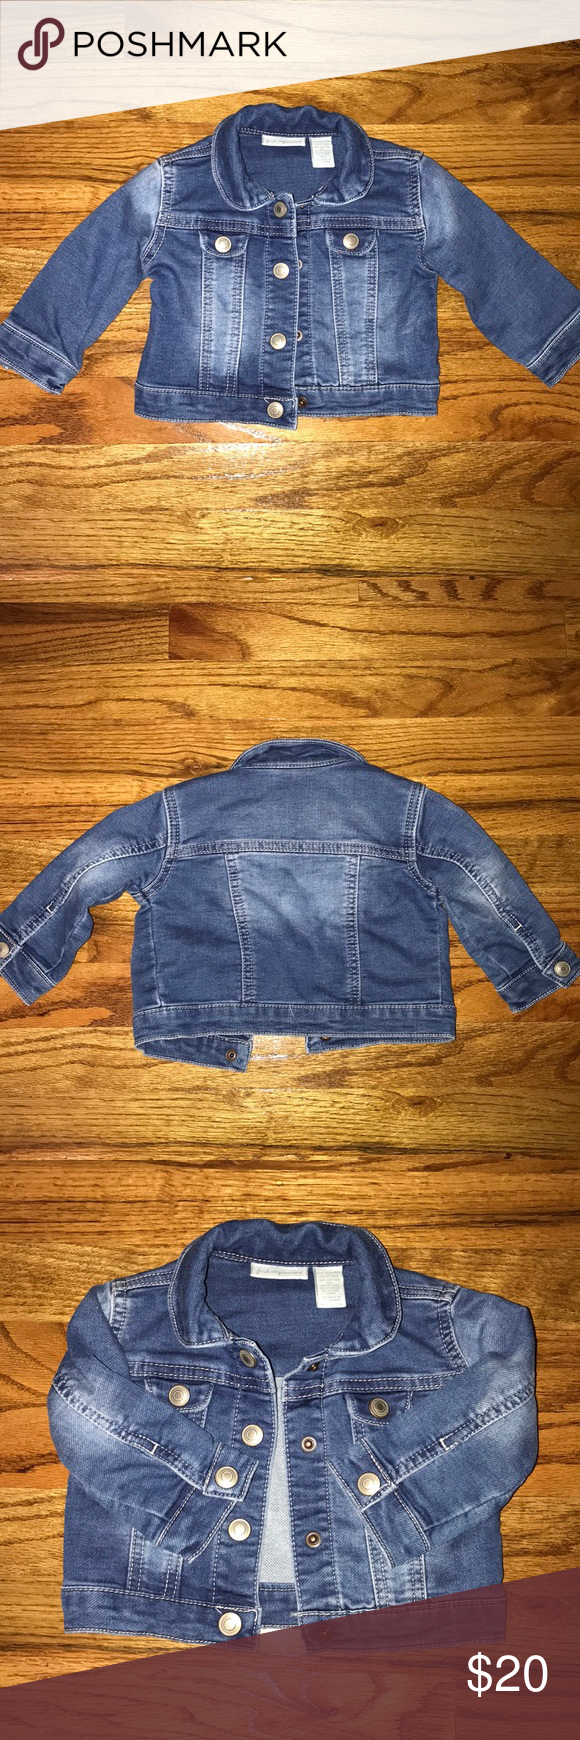 ed044f5c First Impressions baby girl jean jacket 💕 First Impression baby girl jean  jacket. Excellent condition, worn only once. Size 3-6 months.